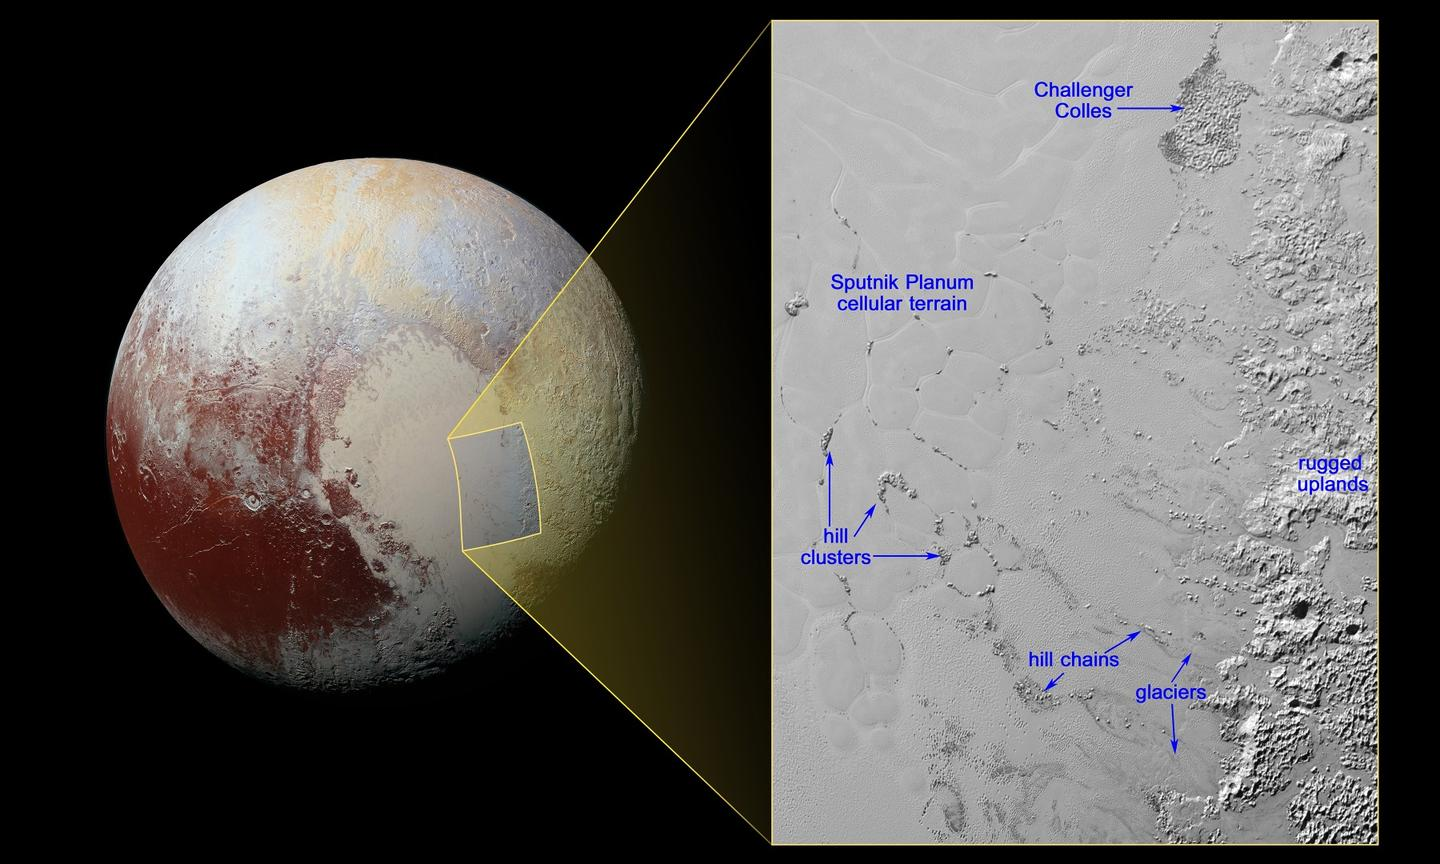 NASA graphic displaying the locations of the floating hills on the informally-named Sputnik Planum region of Pluto